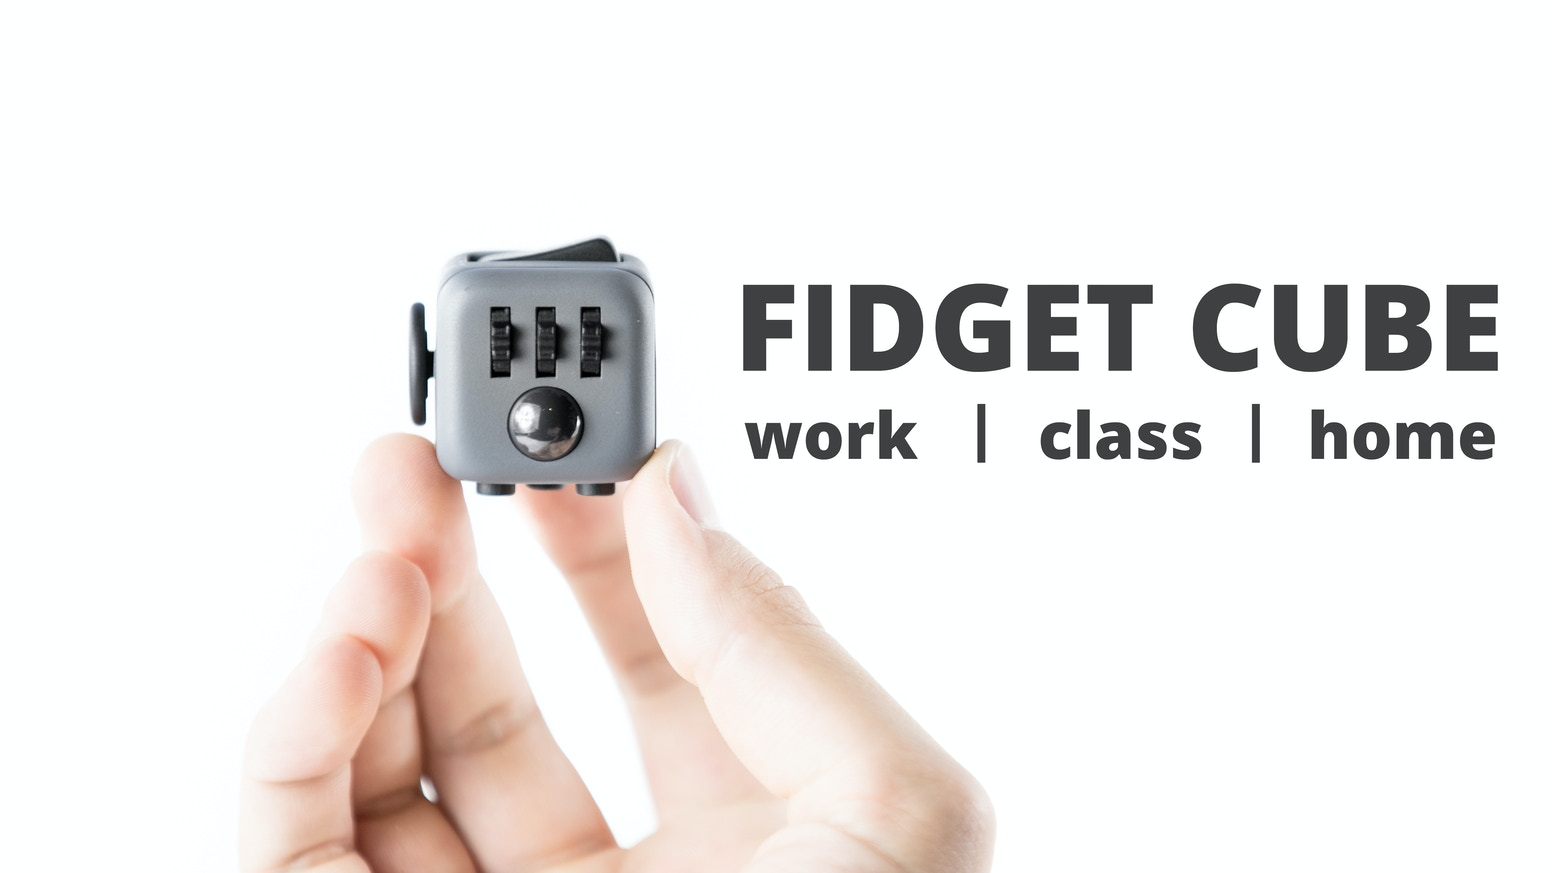 An unusually addicting, high-quality desk toy designed to help you focus. Fidget at work, in class, and at home in style.